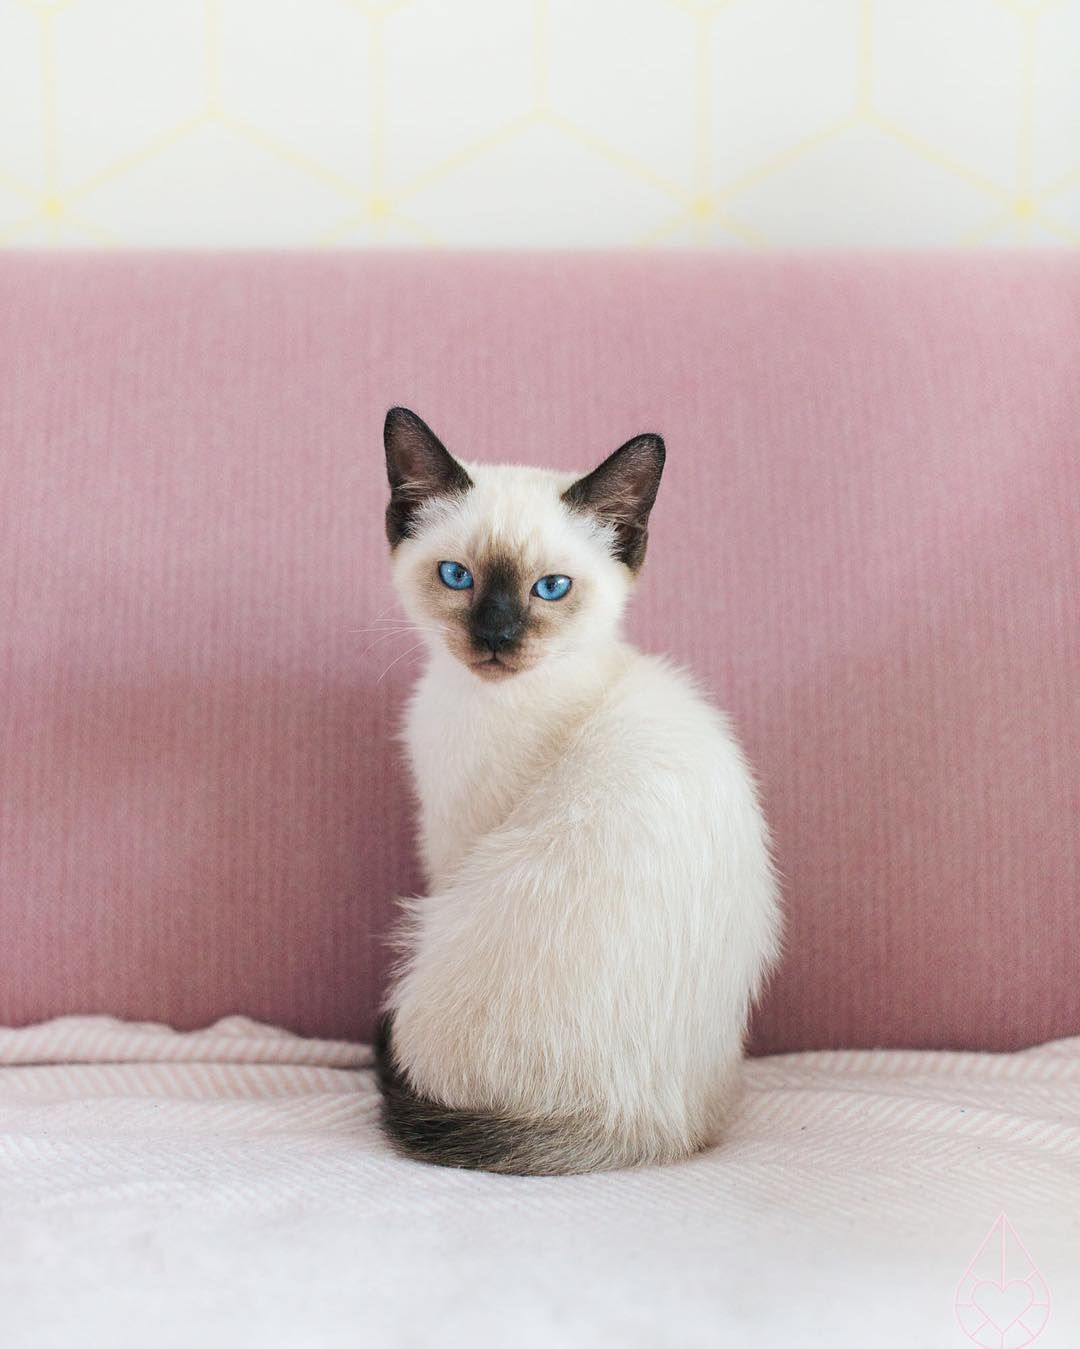 We have a new family member: Pjoes, a Siamese-Ragdoll kitten. More ...